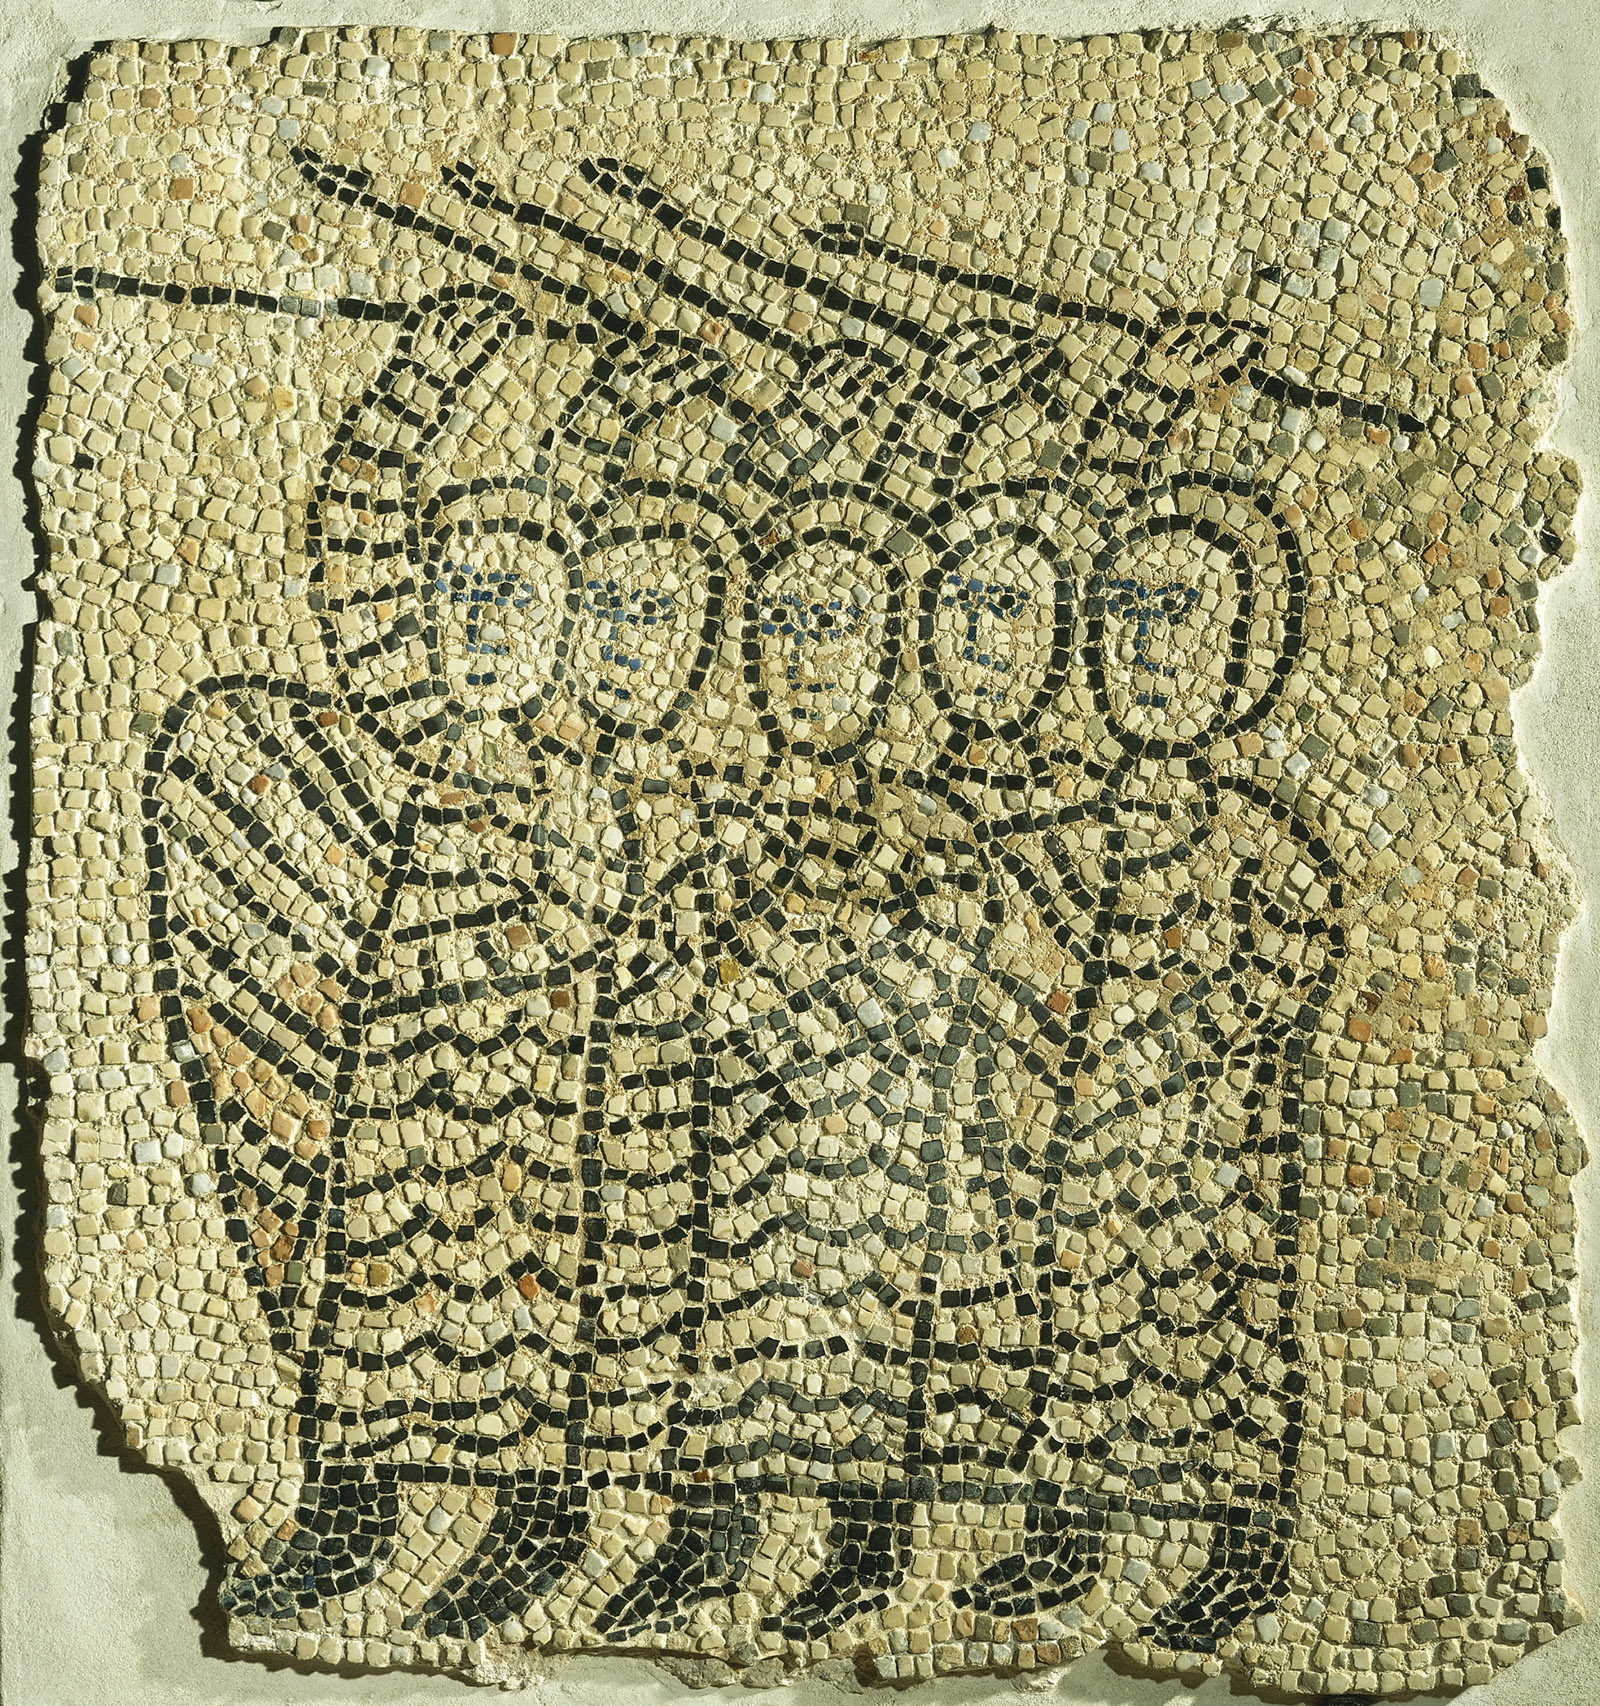 A detail of mosaic flooring depicting soldiers in the Fourth Crusade; from the Church of Saint John the Evangelist, Ravenna